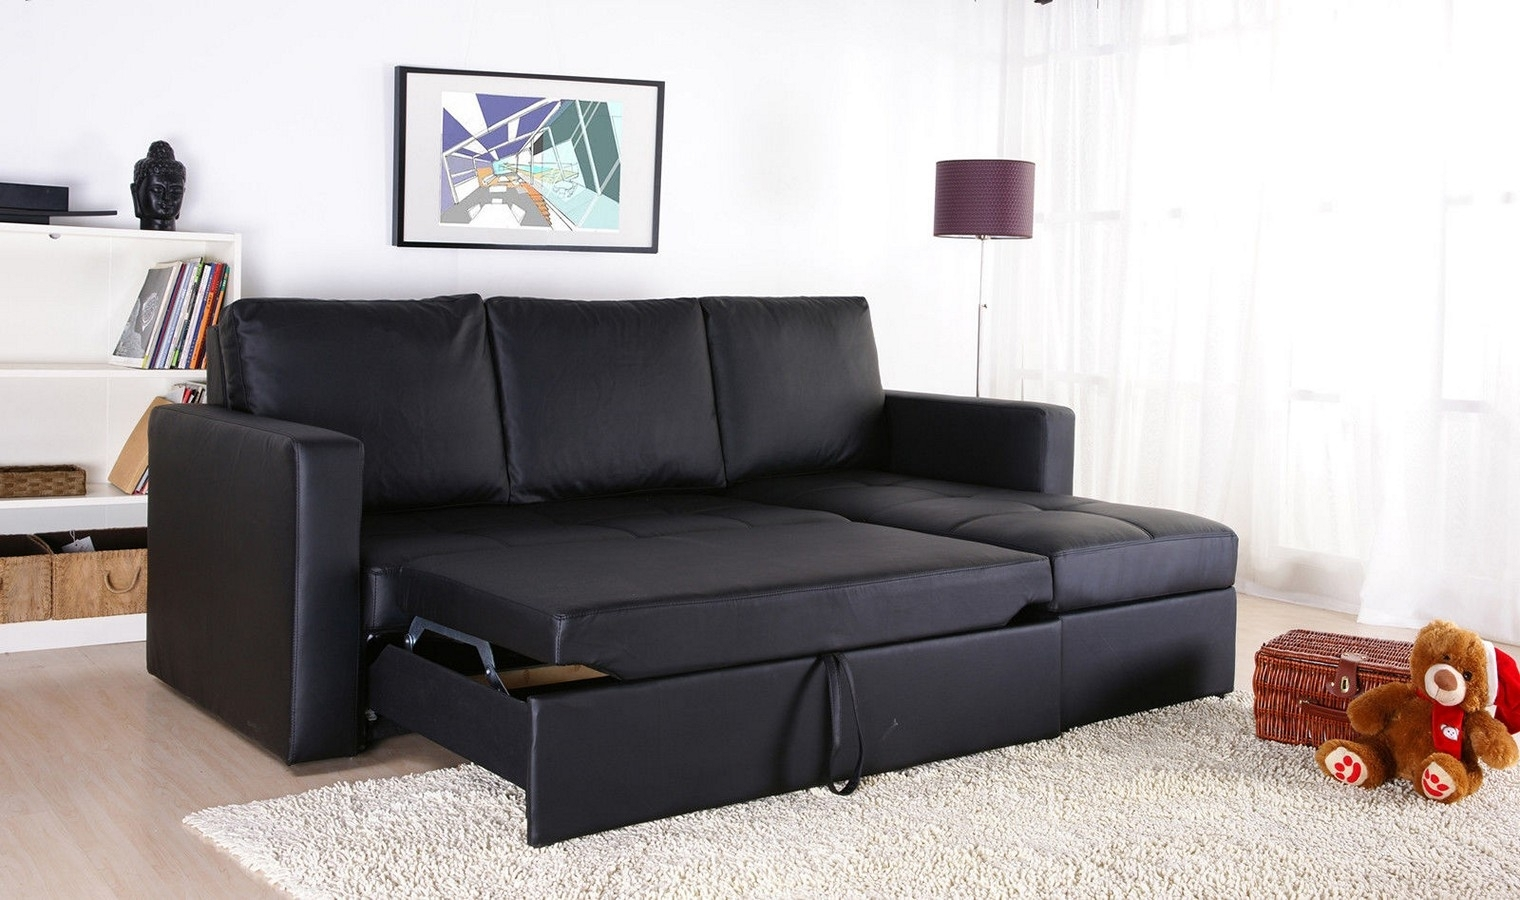 Furniture: Chic Cheap Sectional Sofas Under 400 For Living Room throughout Sectional Sofas Under 400 (Image 2 of 15)